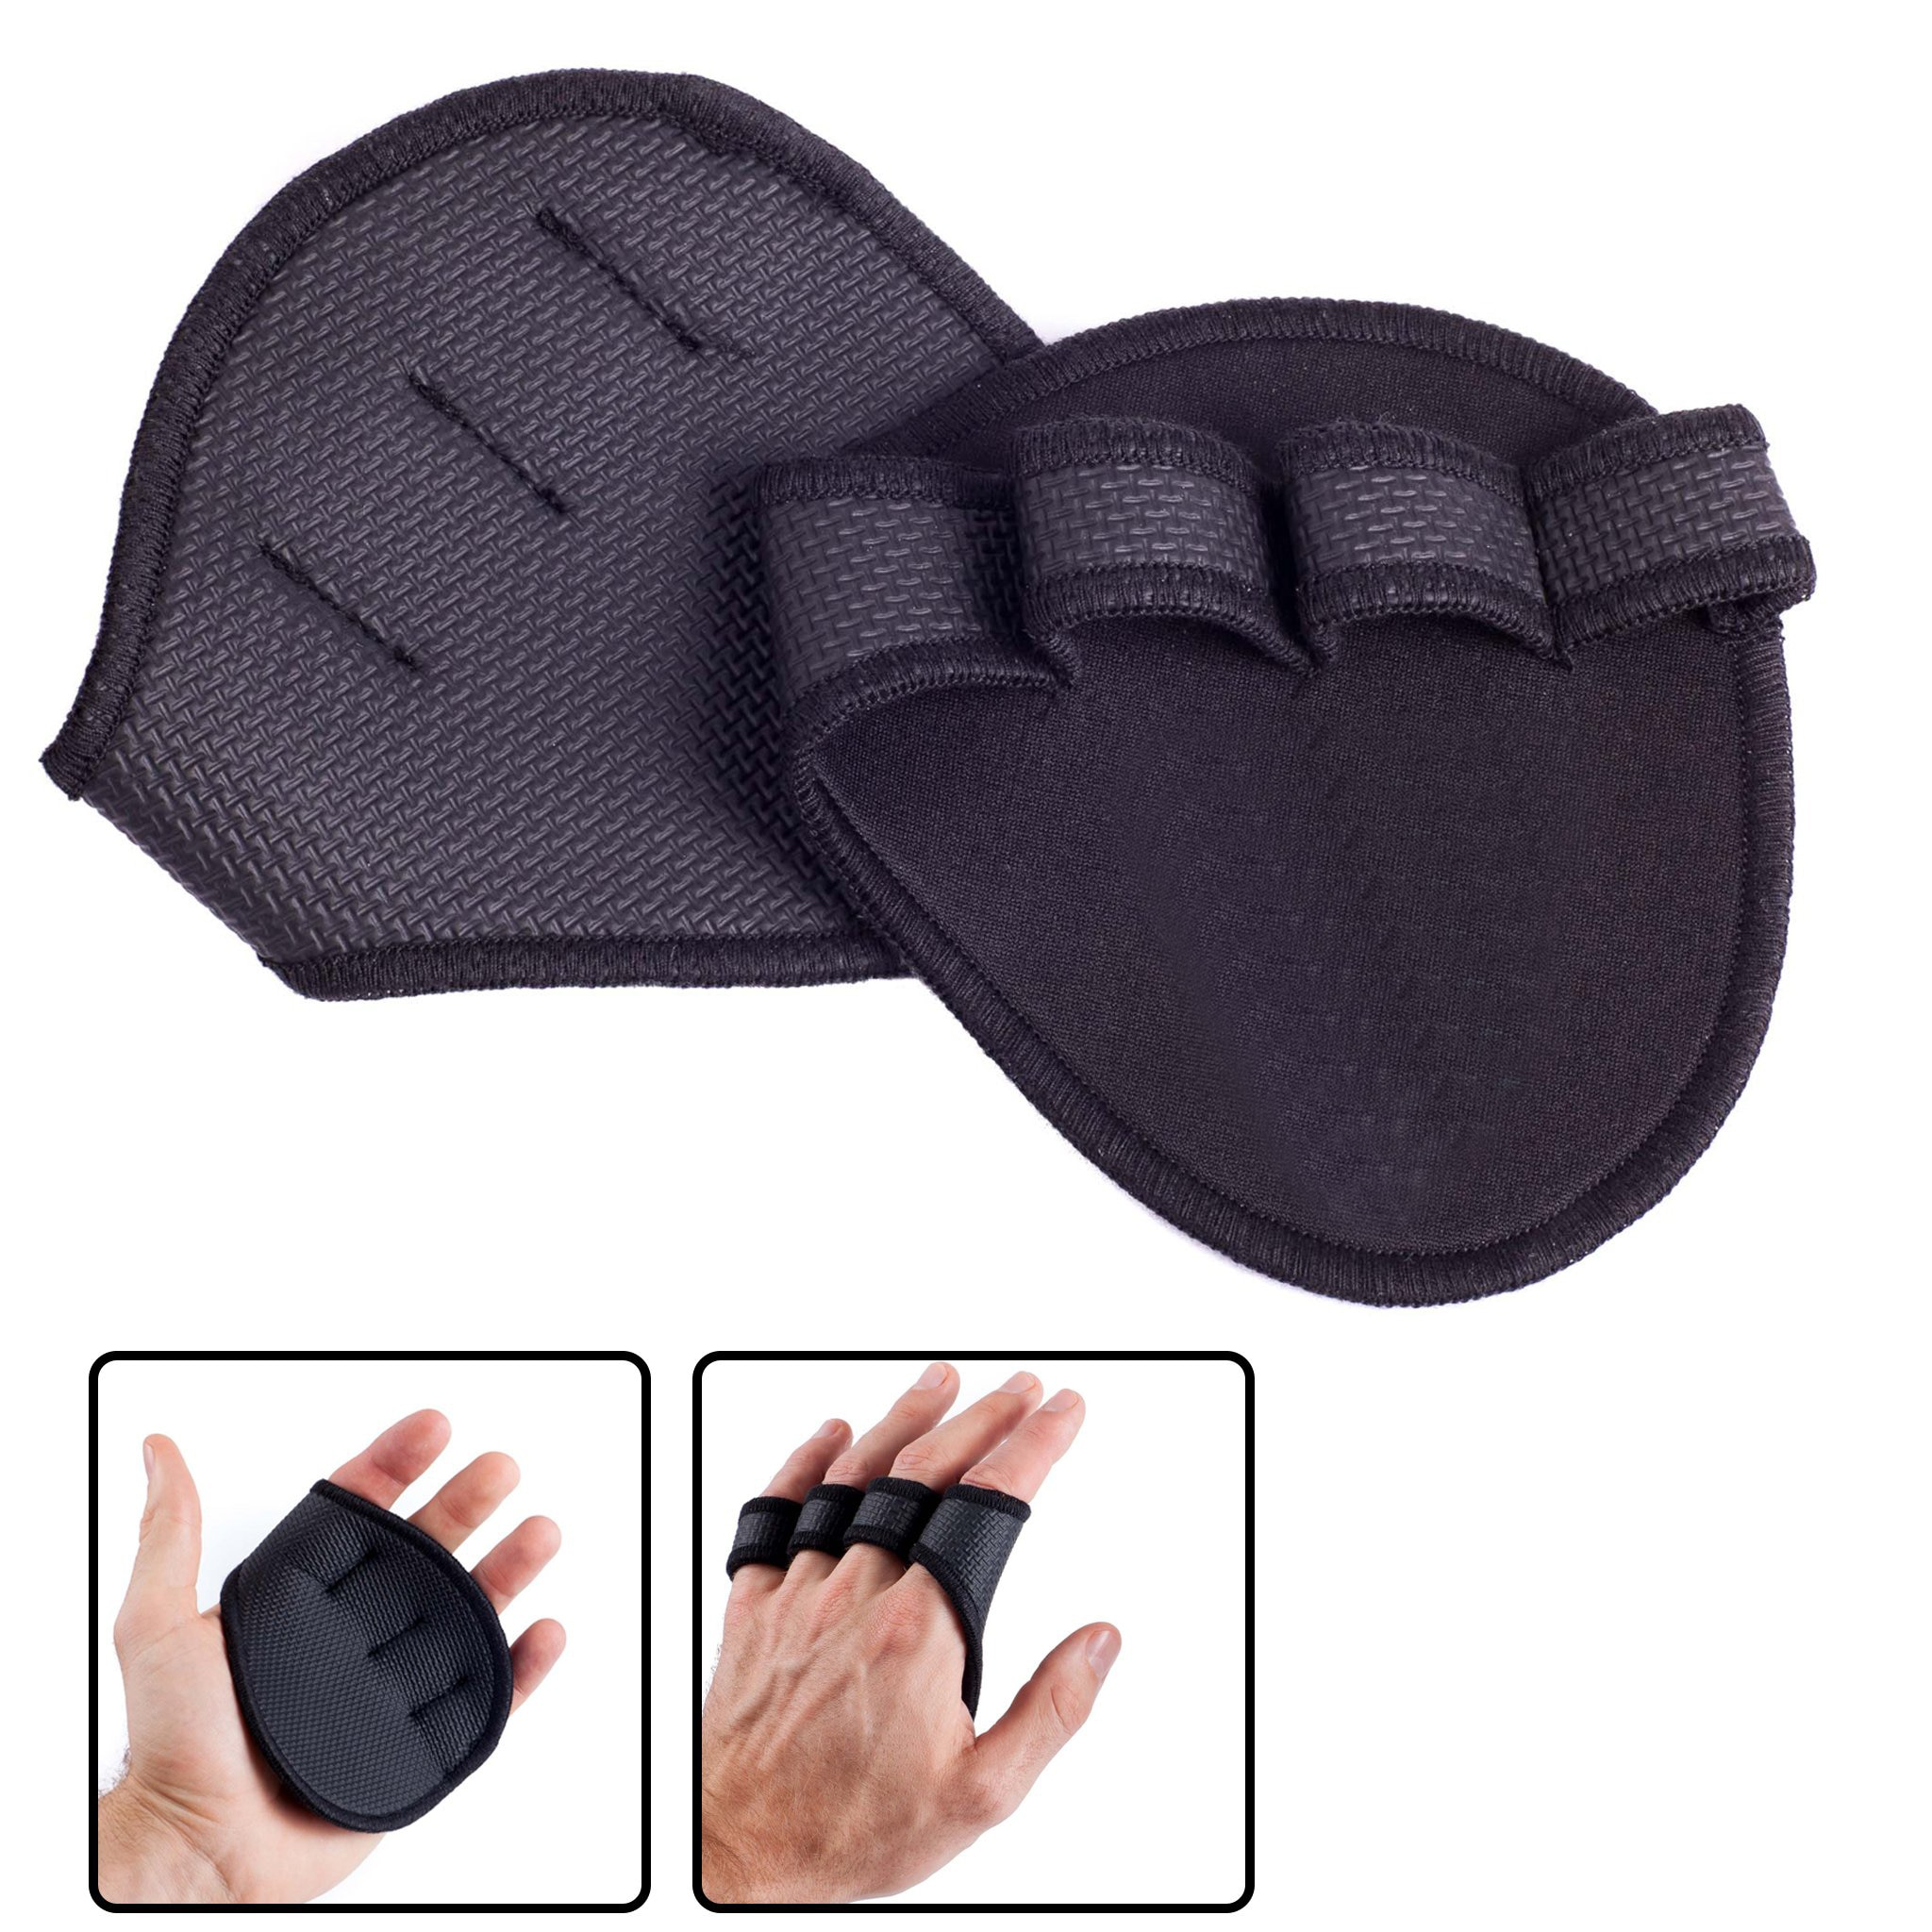 Lifting Palm Dumbbell Grips Pads Unisex Anti Skid Weight Cross Training Gloves Gym Workout Fitness Sports For Hand Protector anti skid sports half finger care palms fitness gloves training dumbbell hand protector fitness equipment